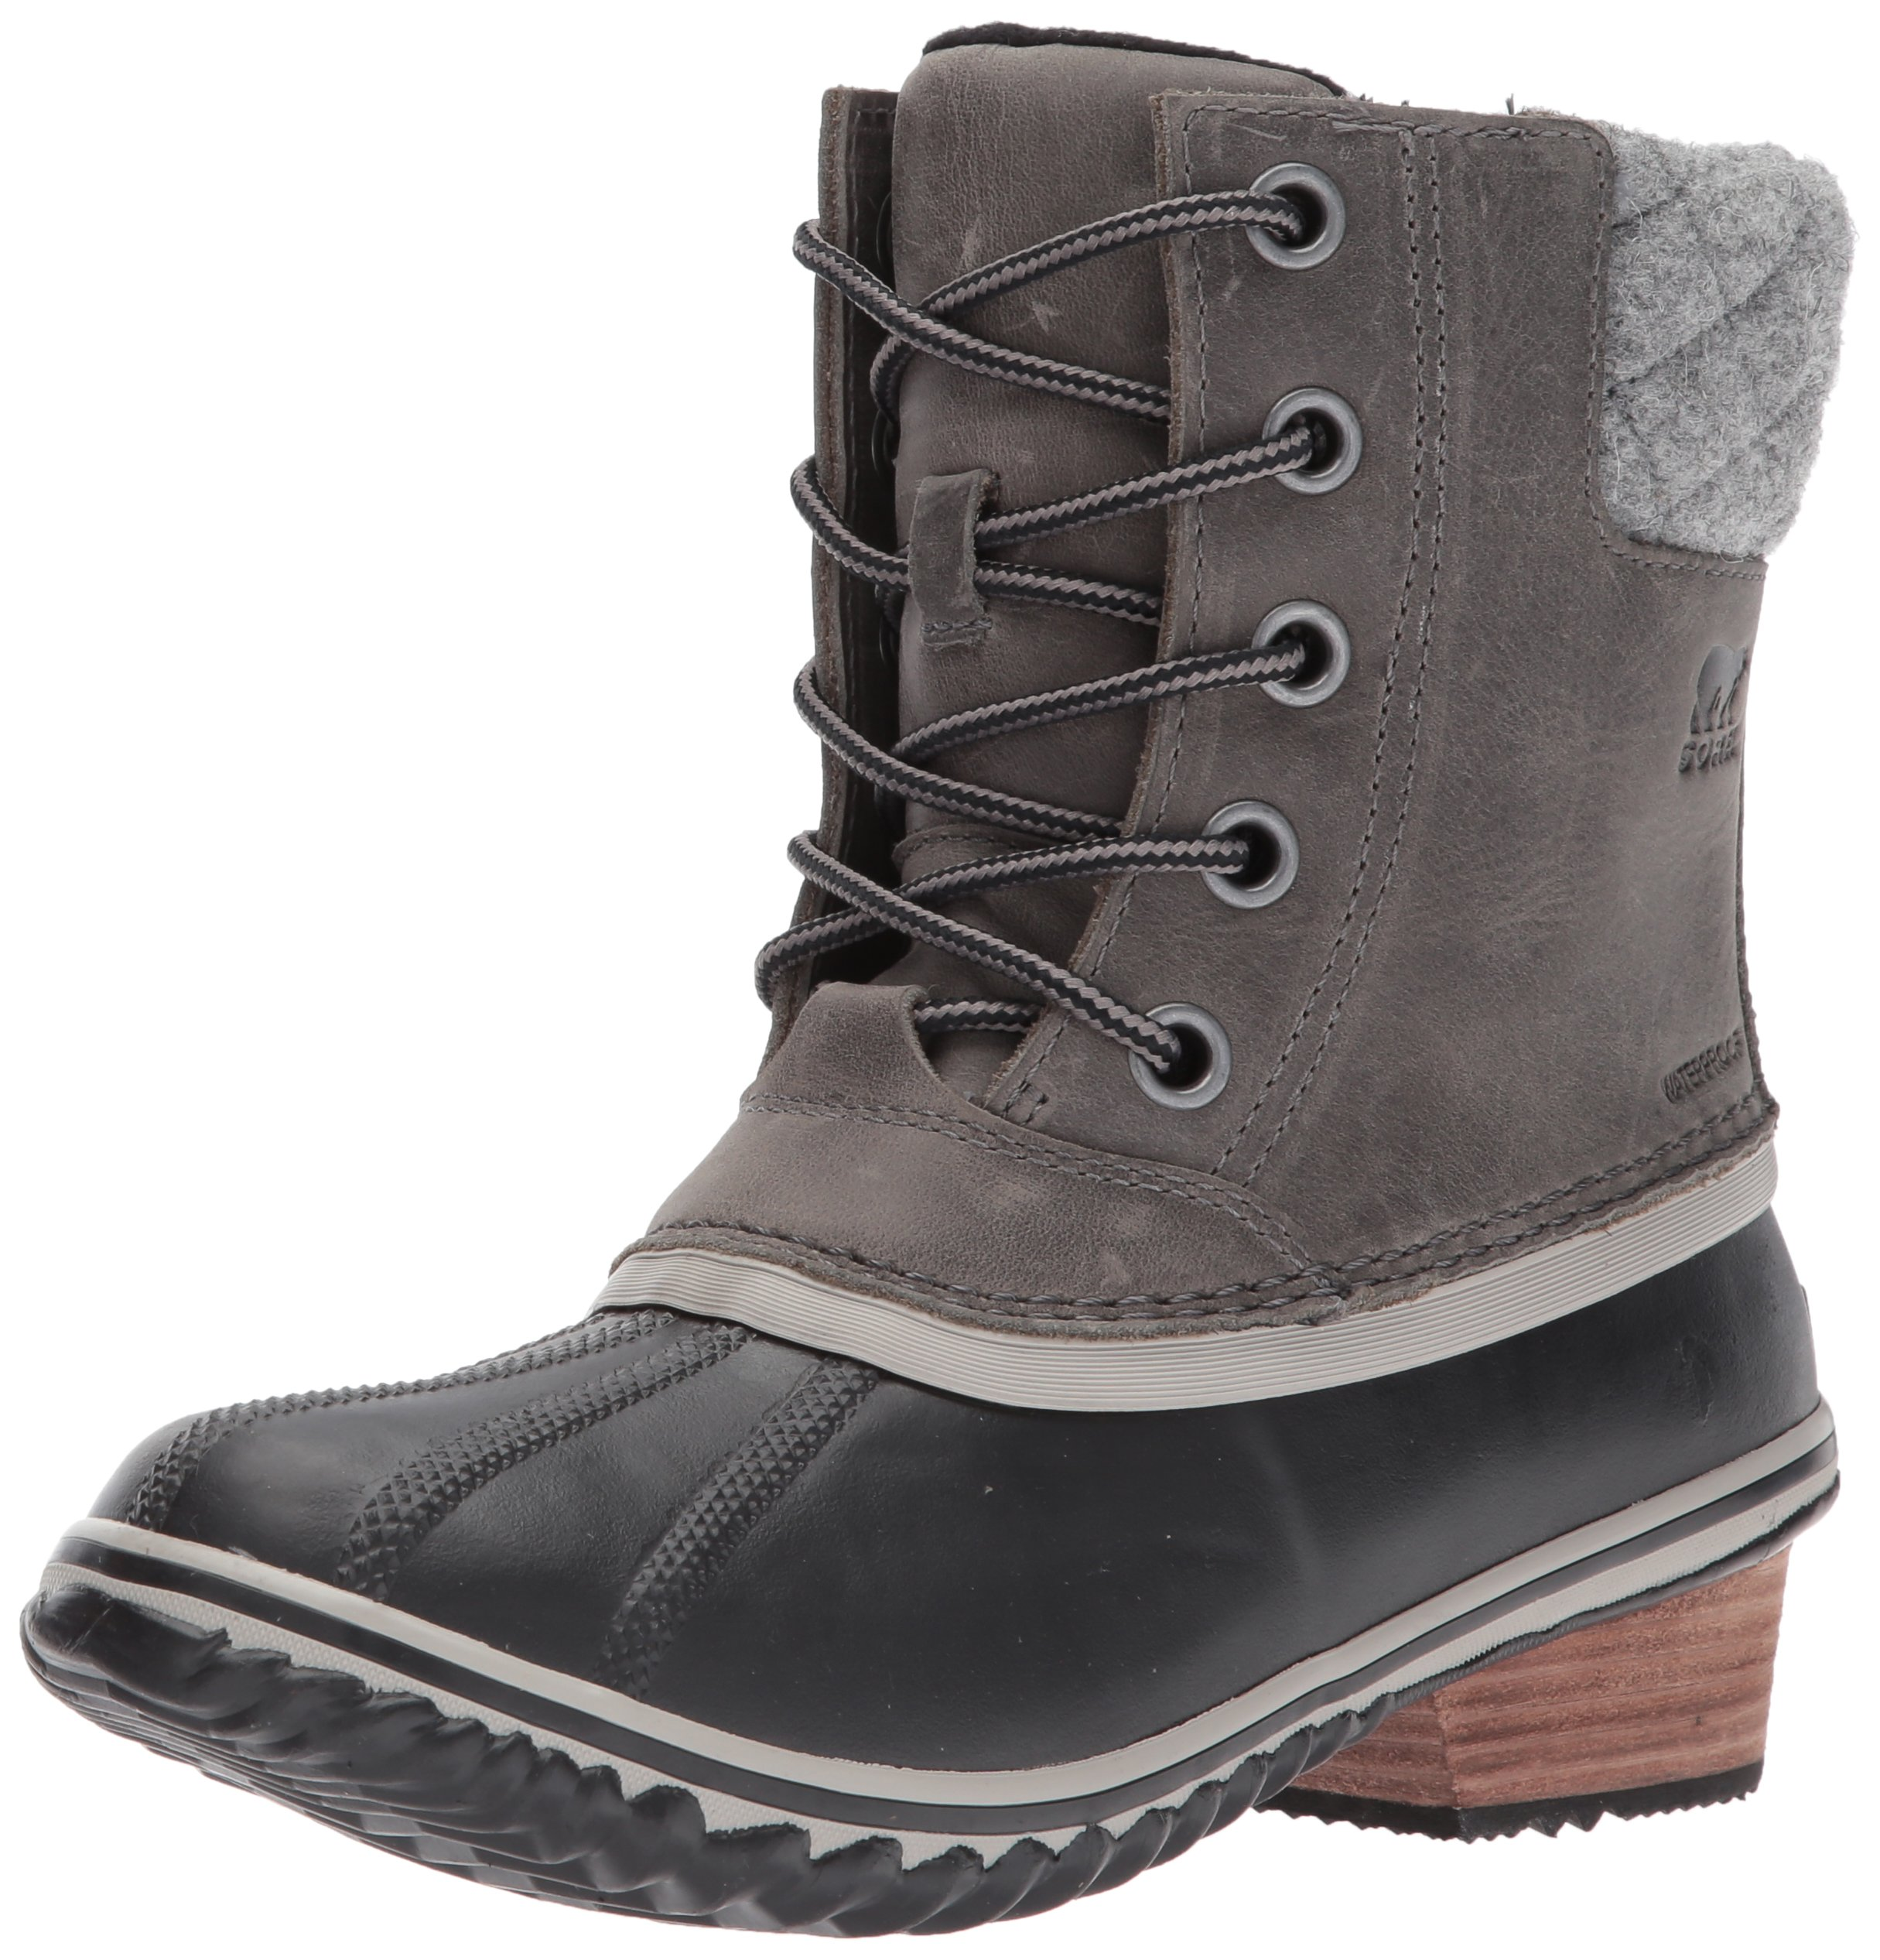 Sorel Women's Slimpack Lace II Snow Boot, Quarry, Black, 8.5 M US